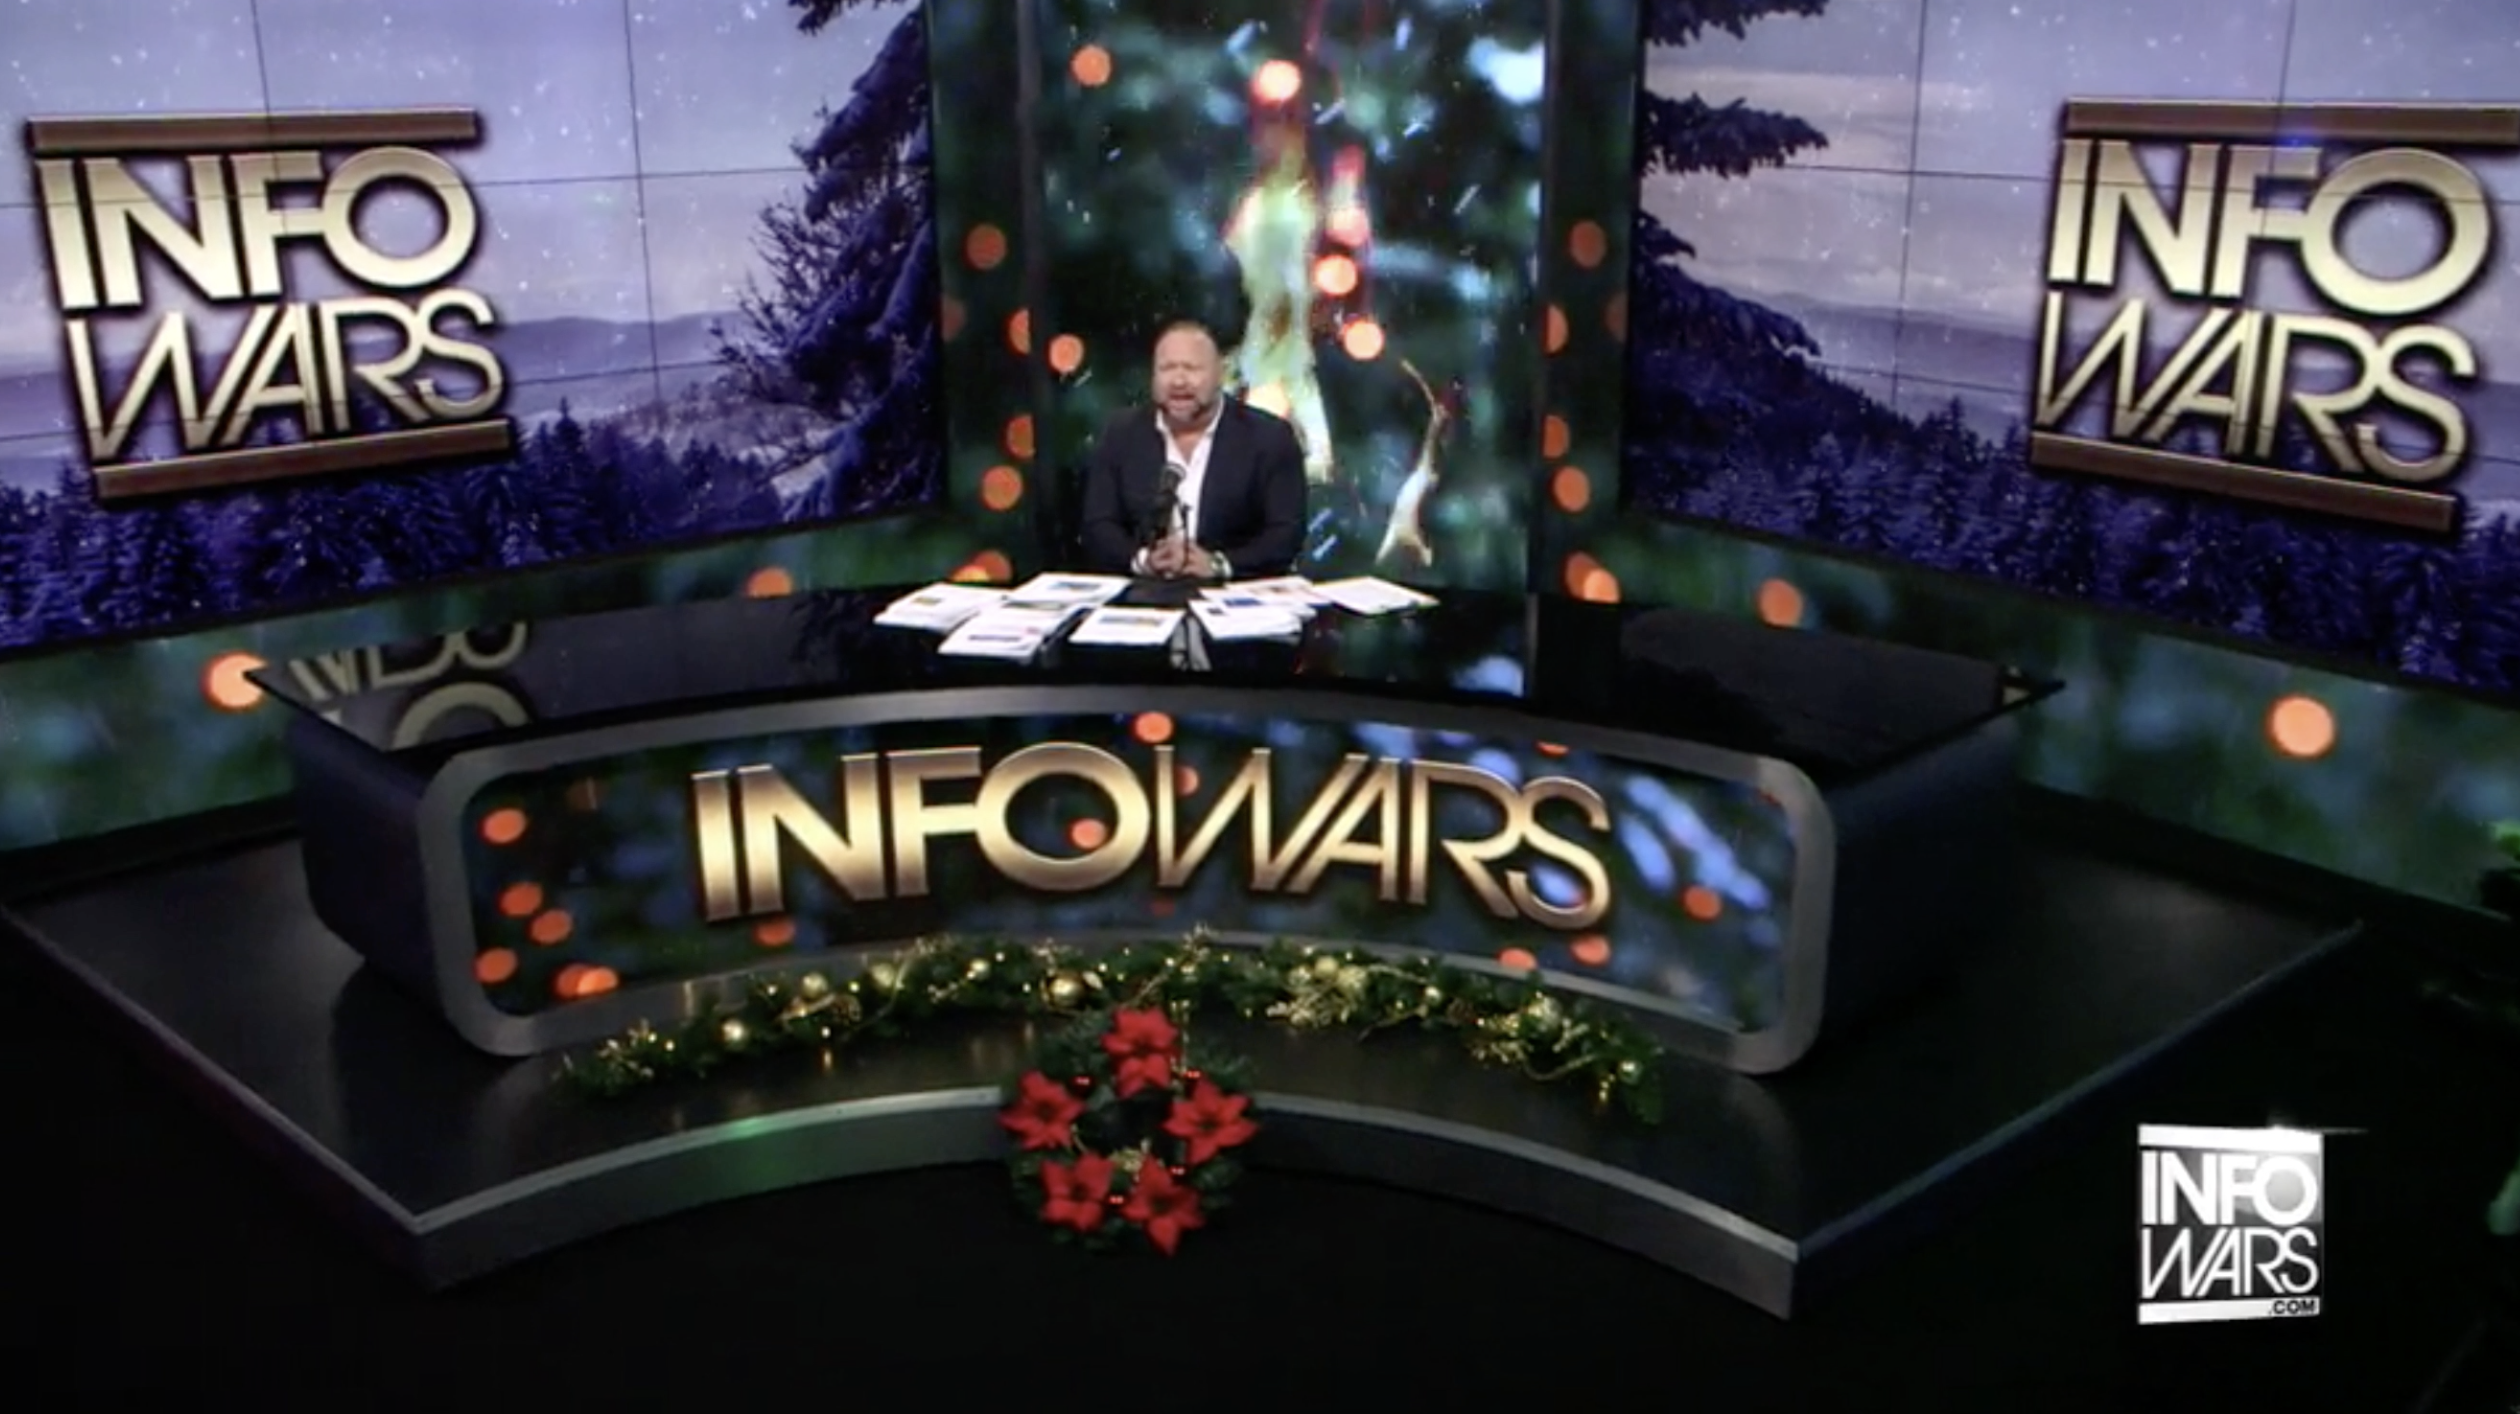 Alex Jones Infowars Studio EXZM Zack Mount December 29th 2020